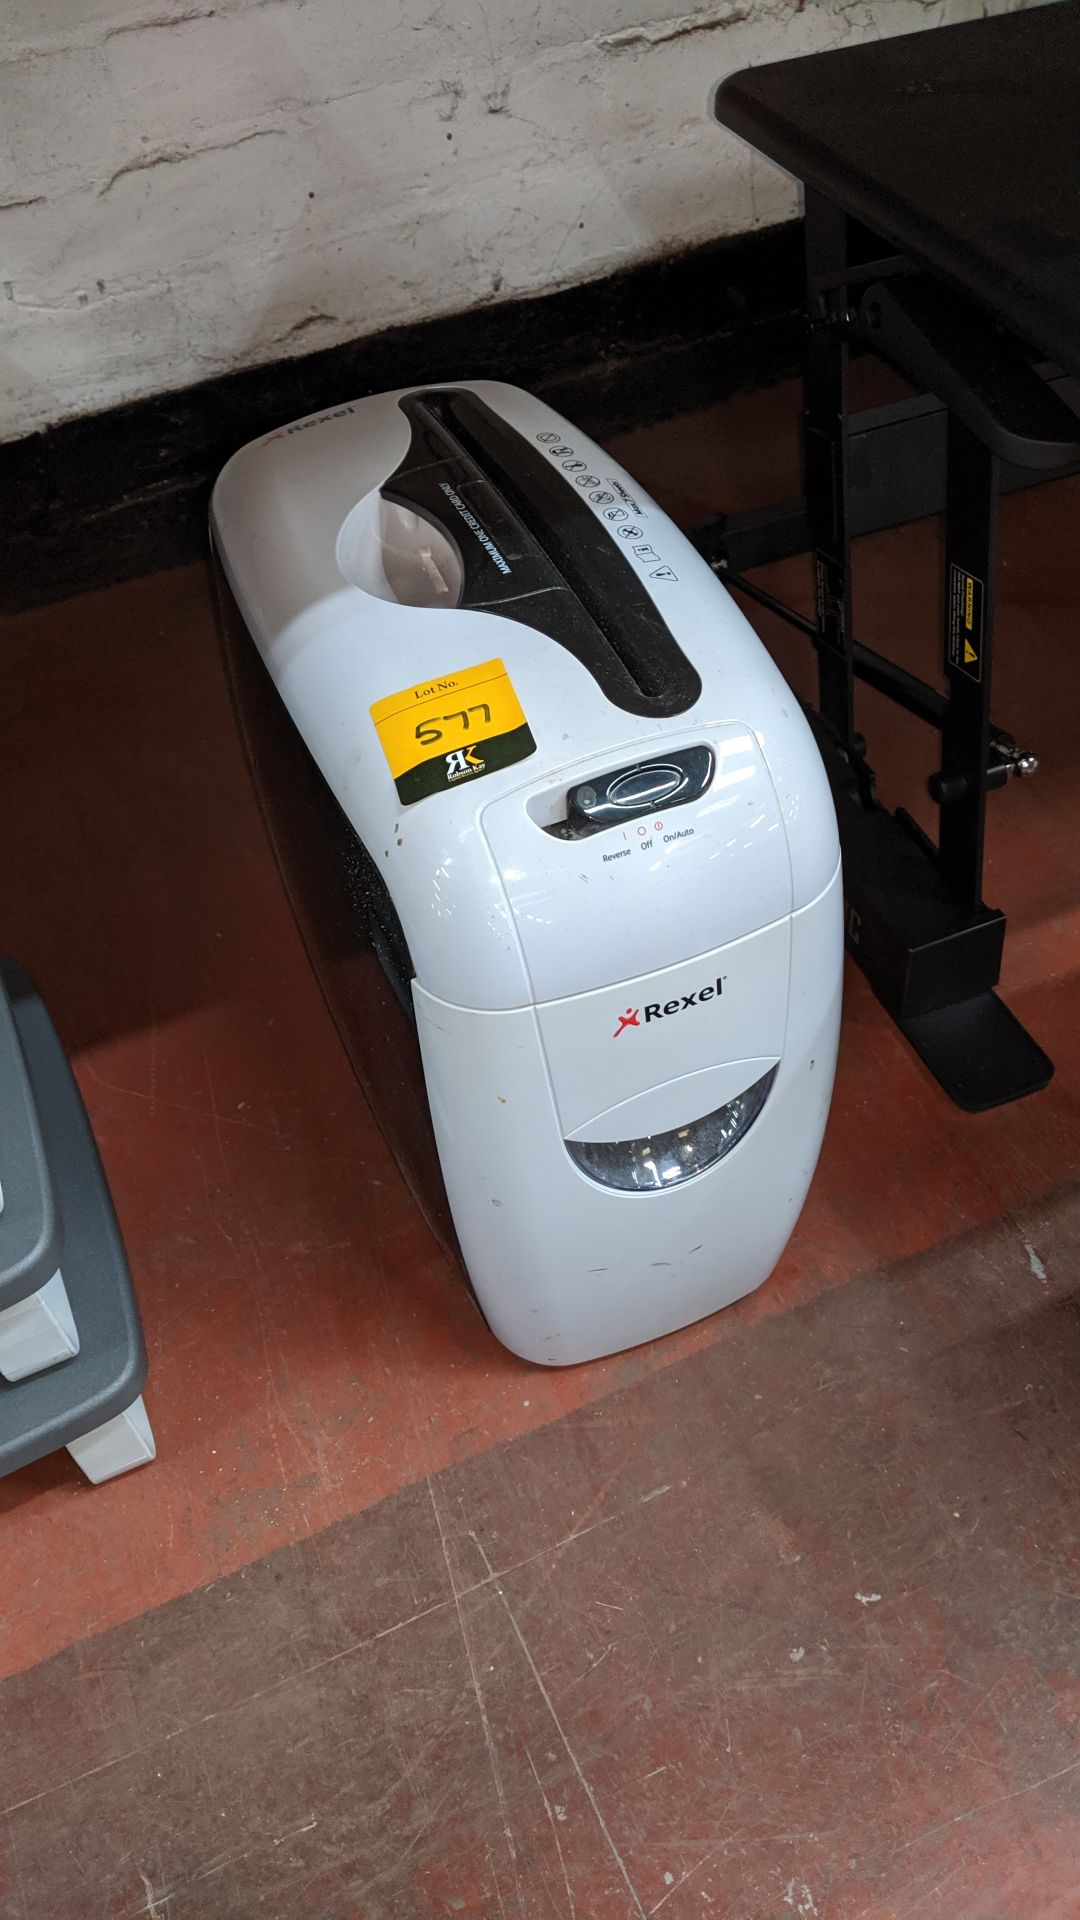 Lot 577 - Rexel office shredder. Lots 560 - 580 form the total assets of a healthcare recruitment company